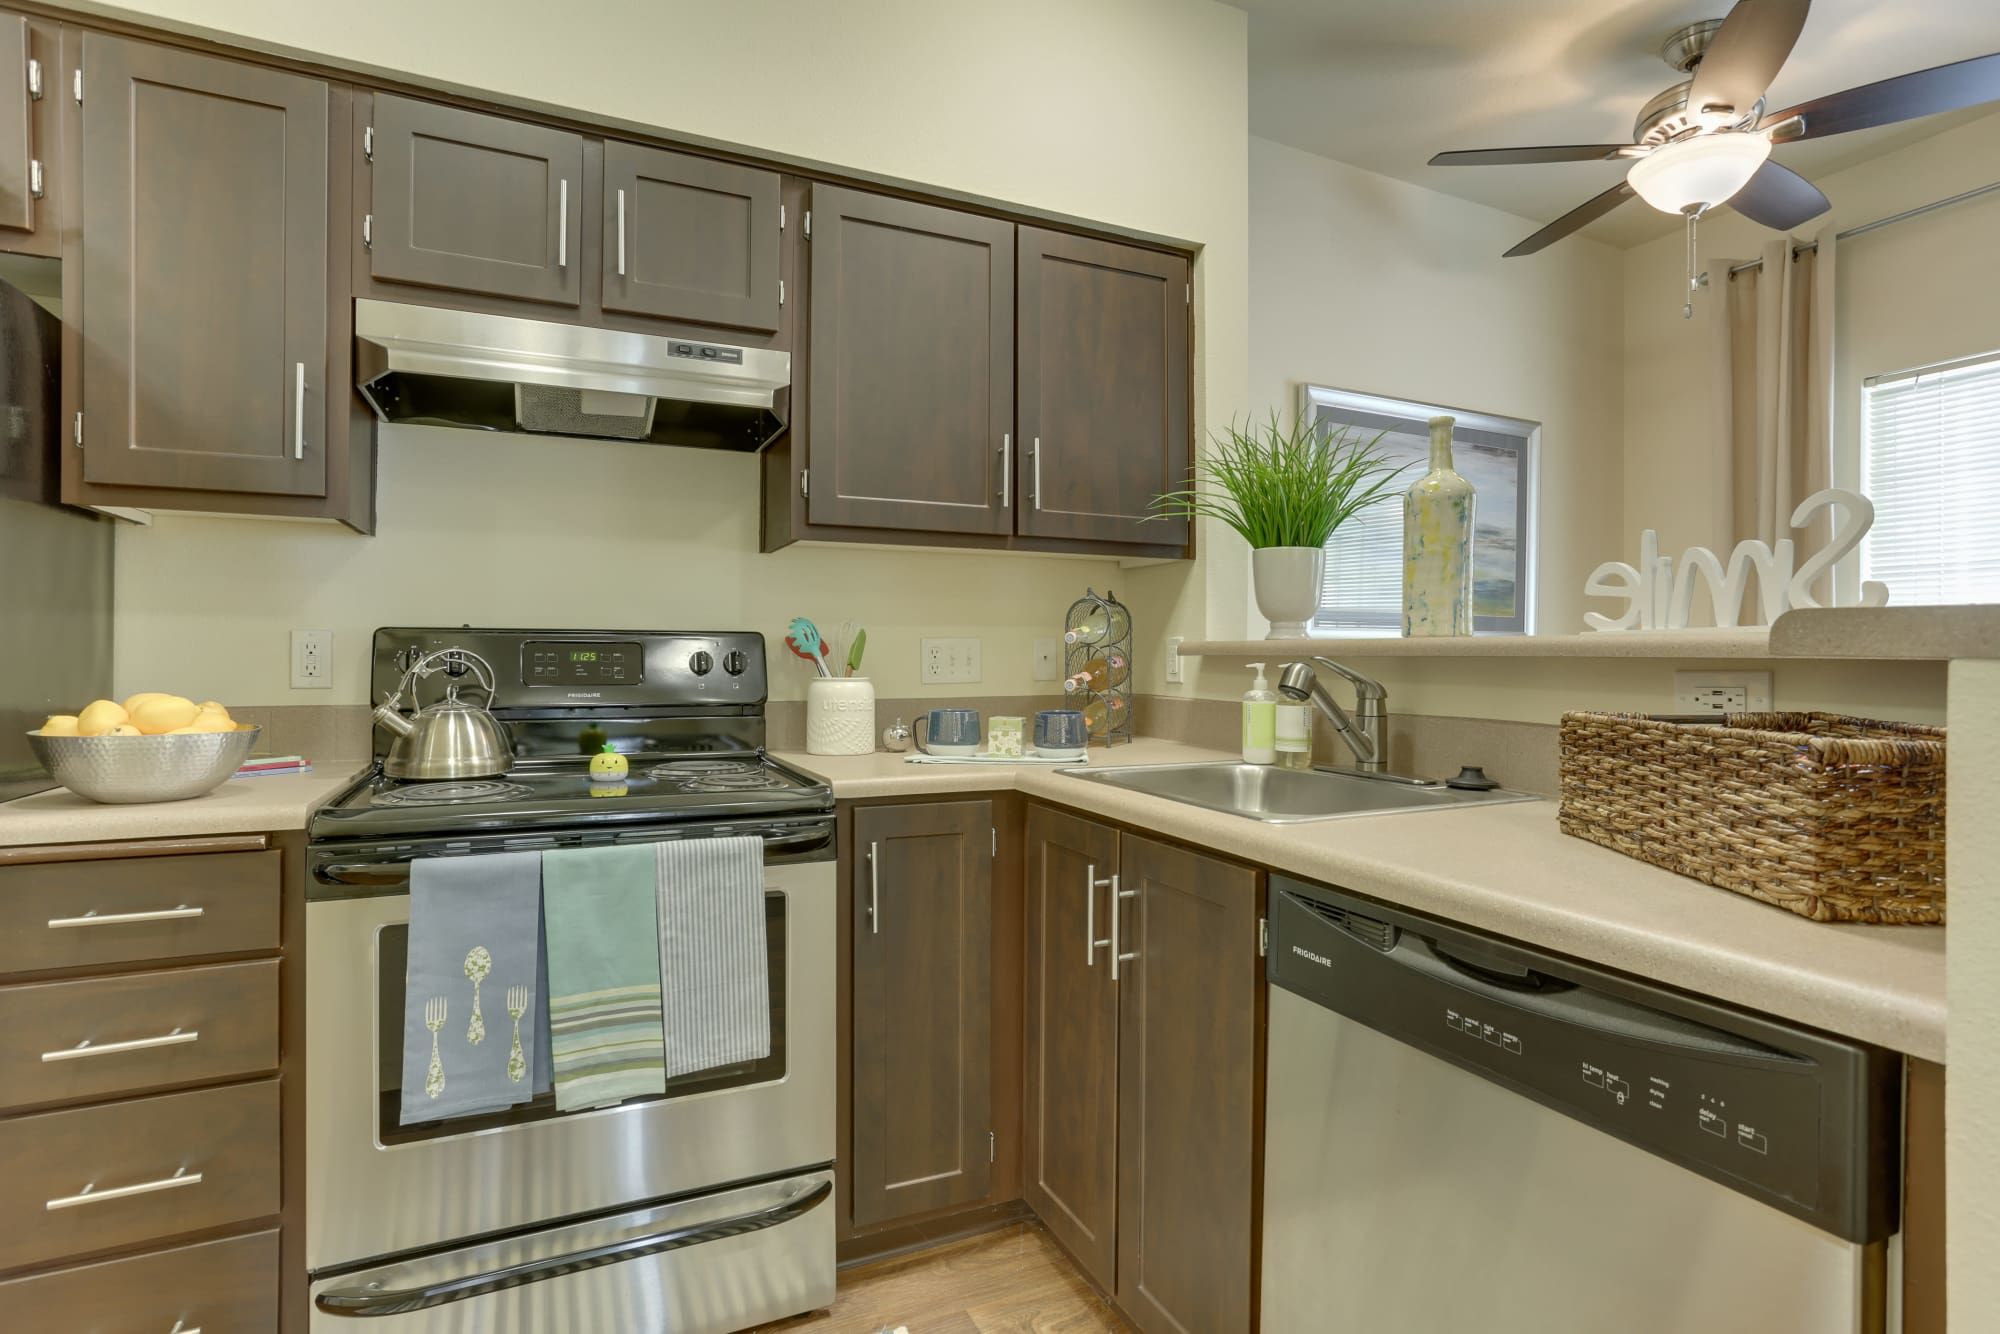 newly renovated brown renovated kitchen with stainless steel appliances At The Landings at Morrison Apartments